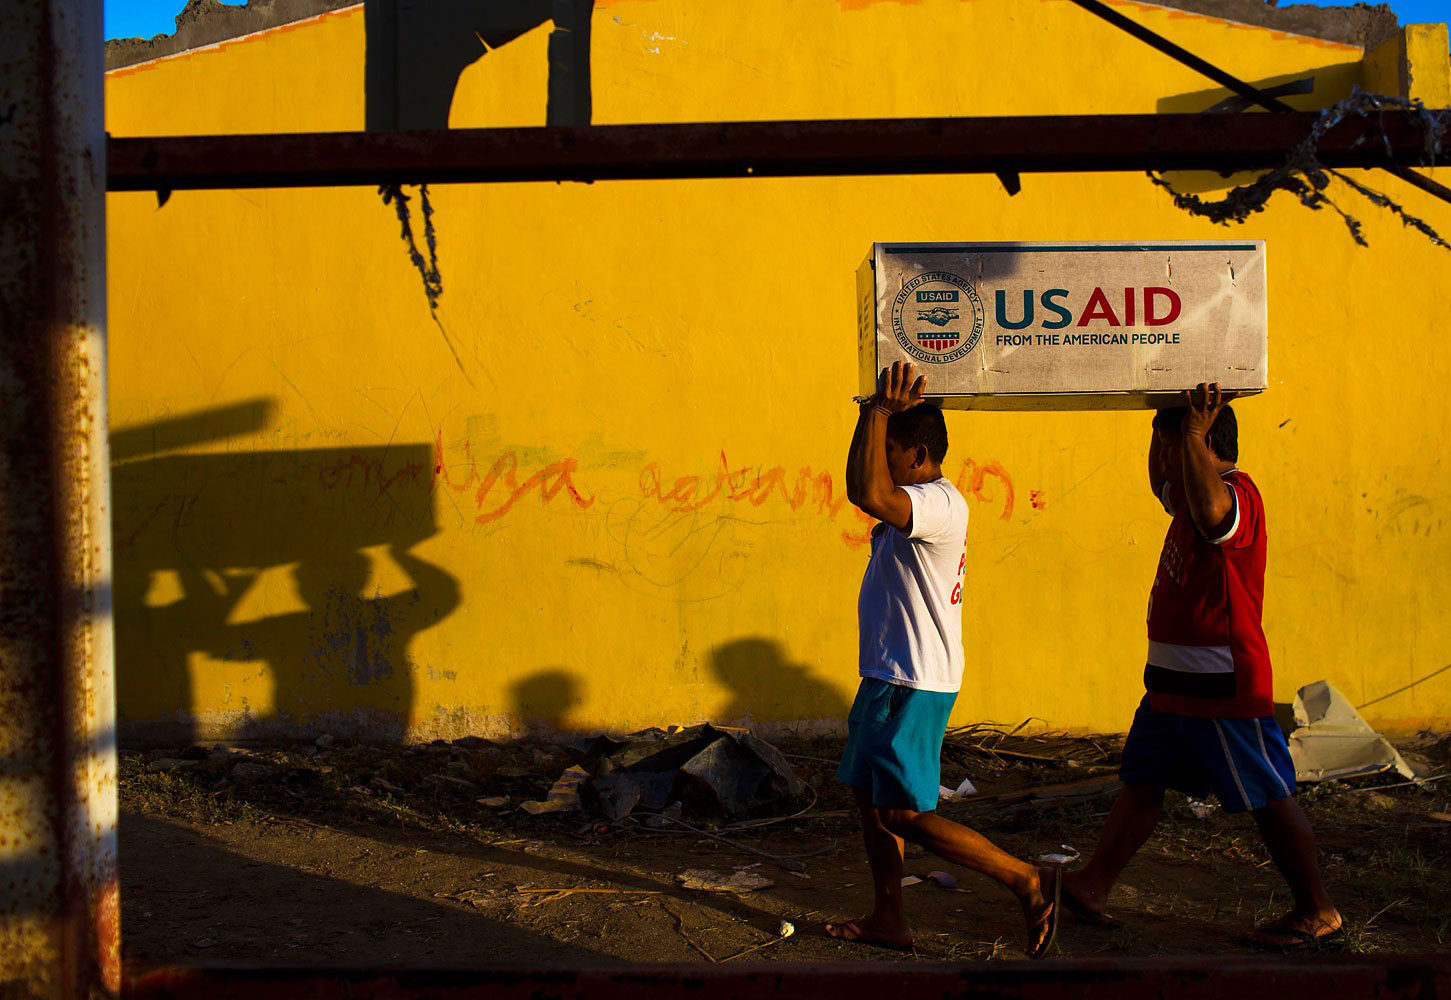 Two men balance a box of USAID food aid on top of their heads